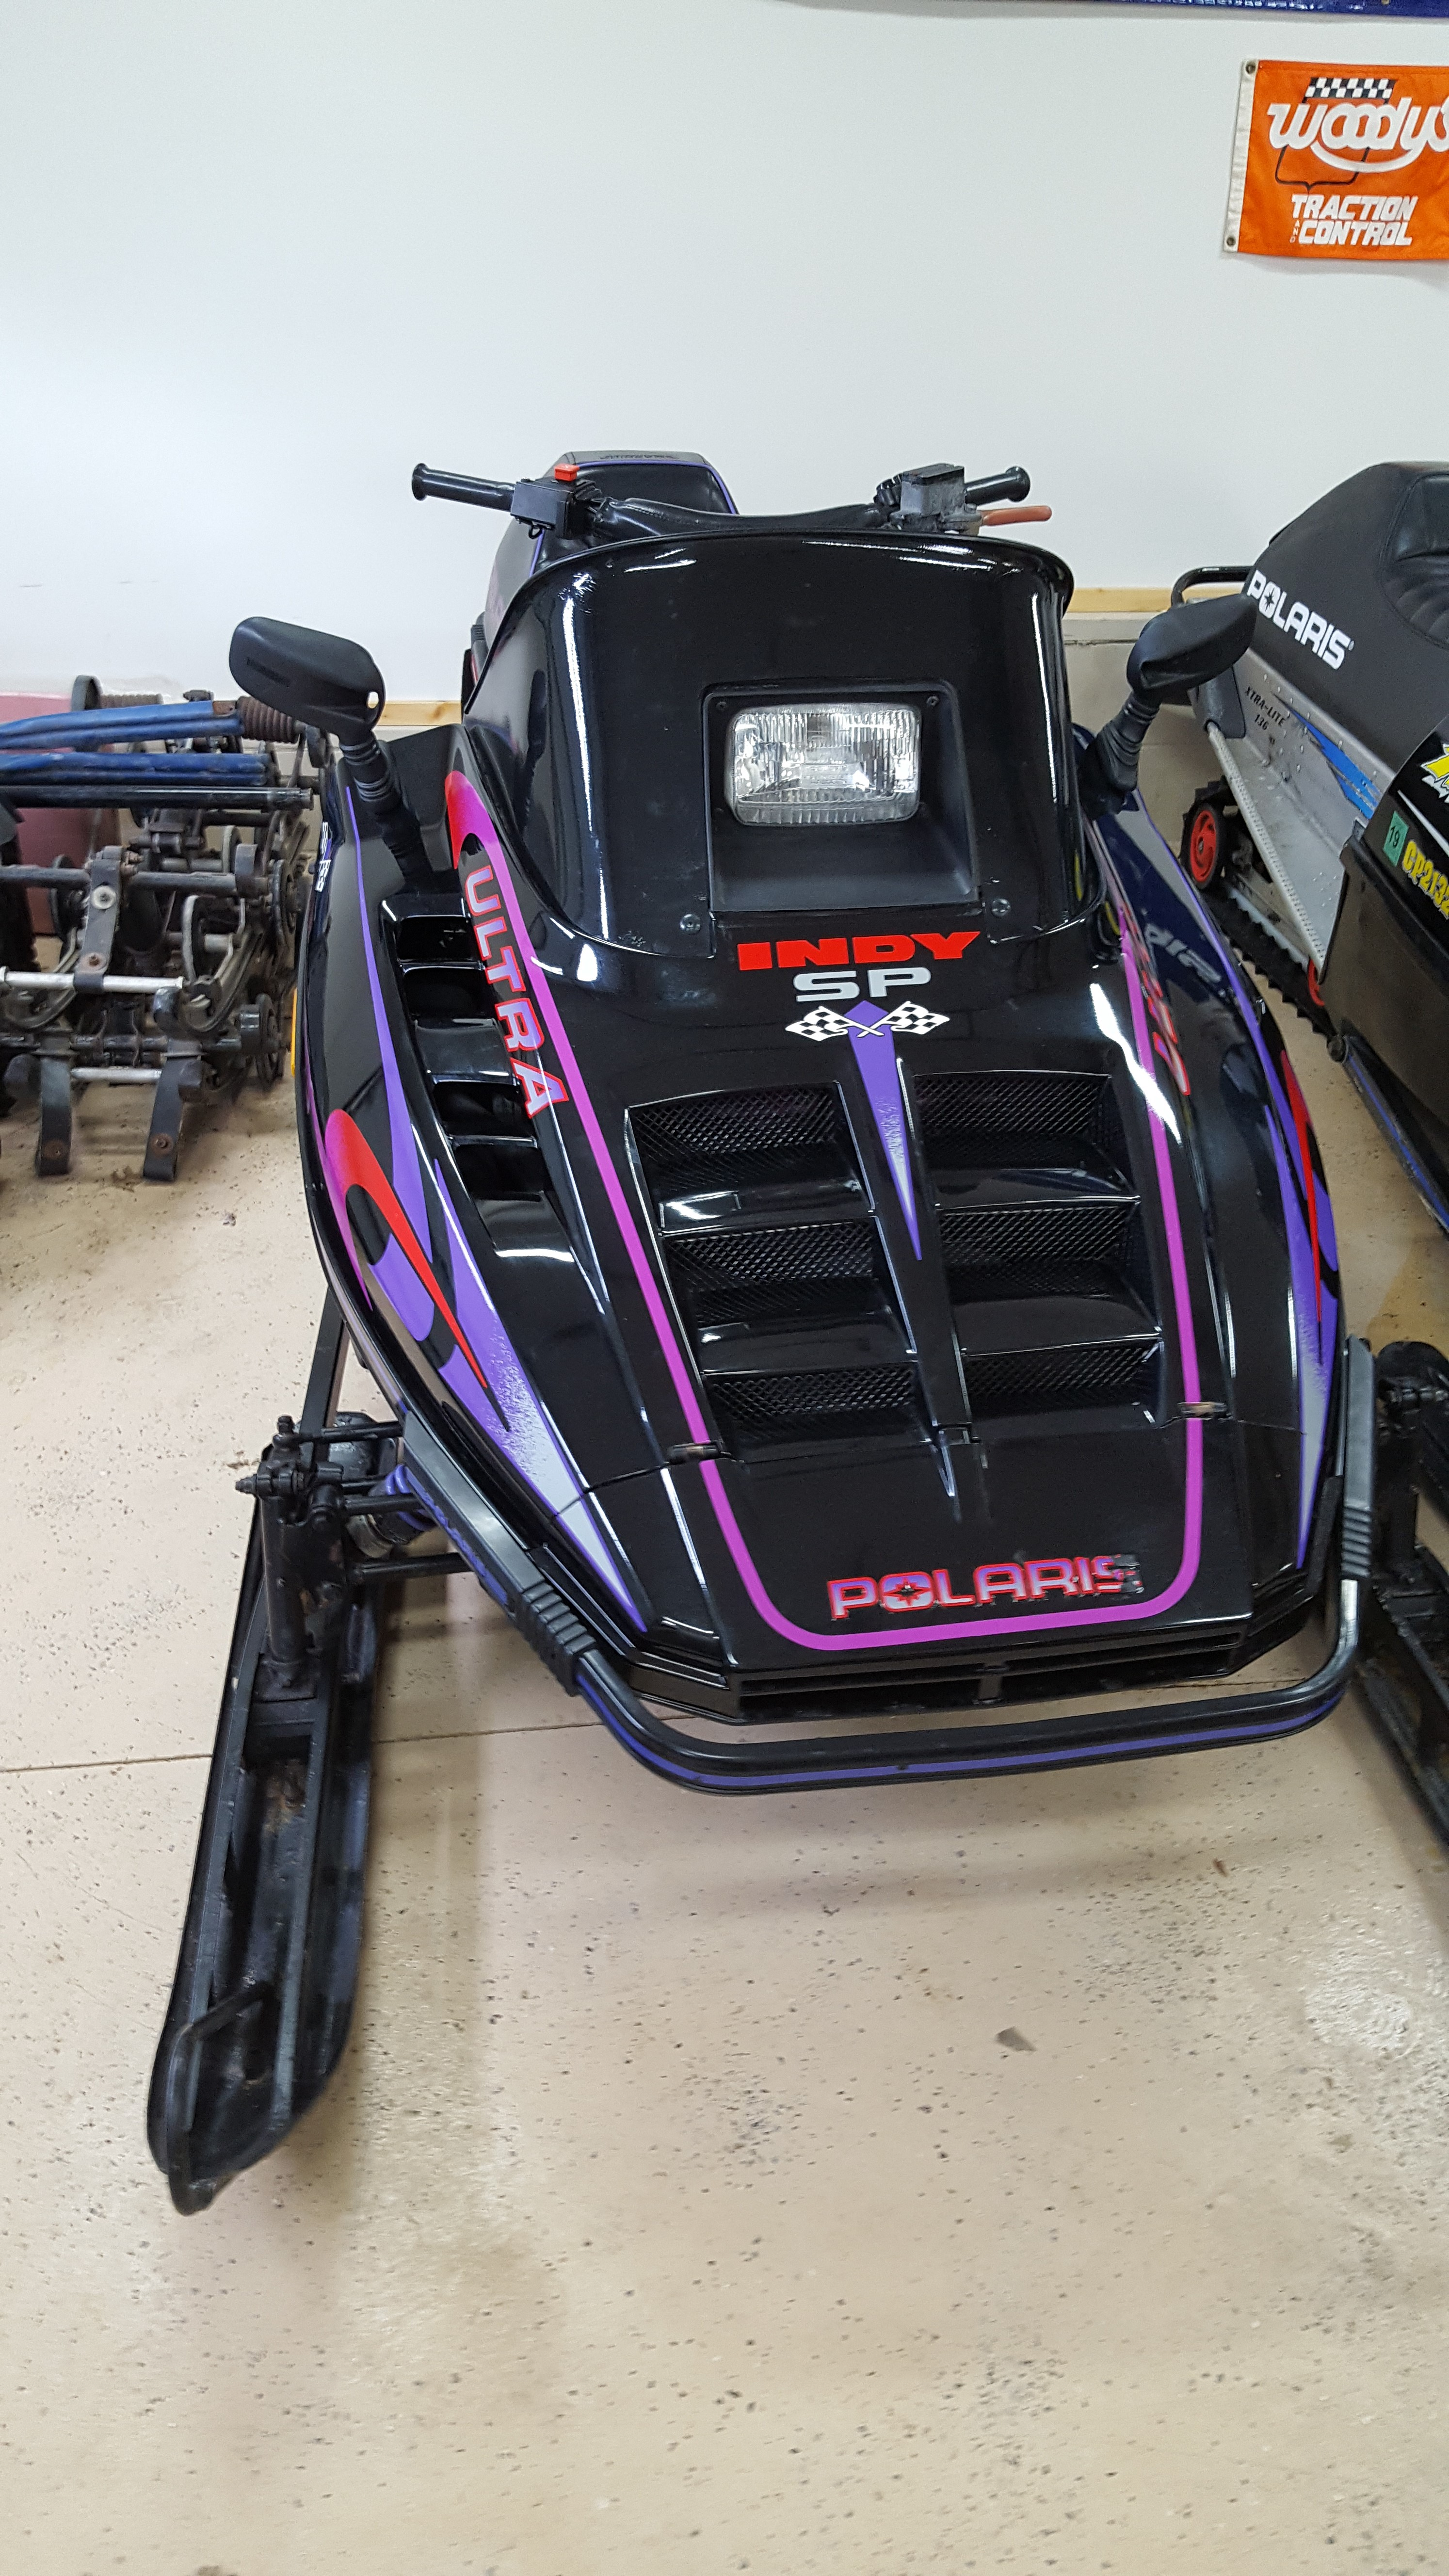 Polaris Side By Side >> 1996 Polaris Ultra SP - for sale